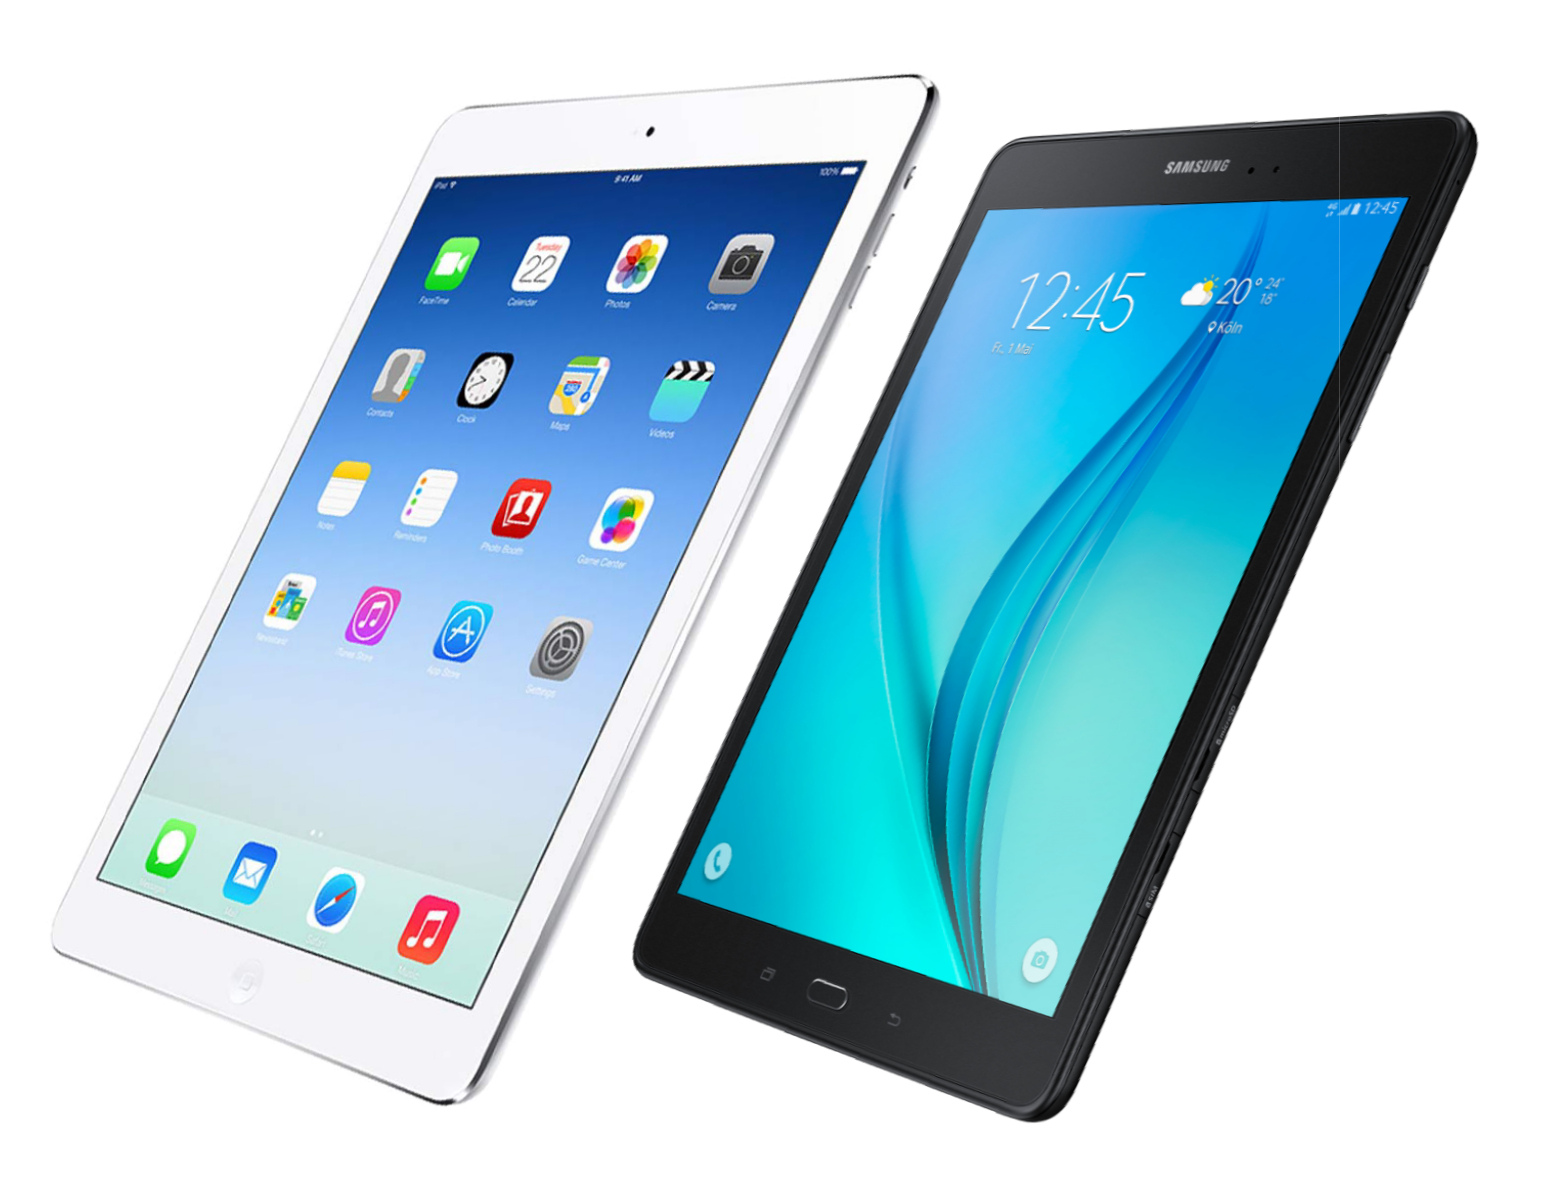 samsung galaxy tab s2 9 7 vs apple ipad air 2. Black Bedroom Furniture Sets. Home Design Ideas